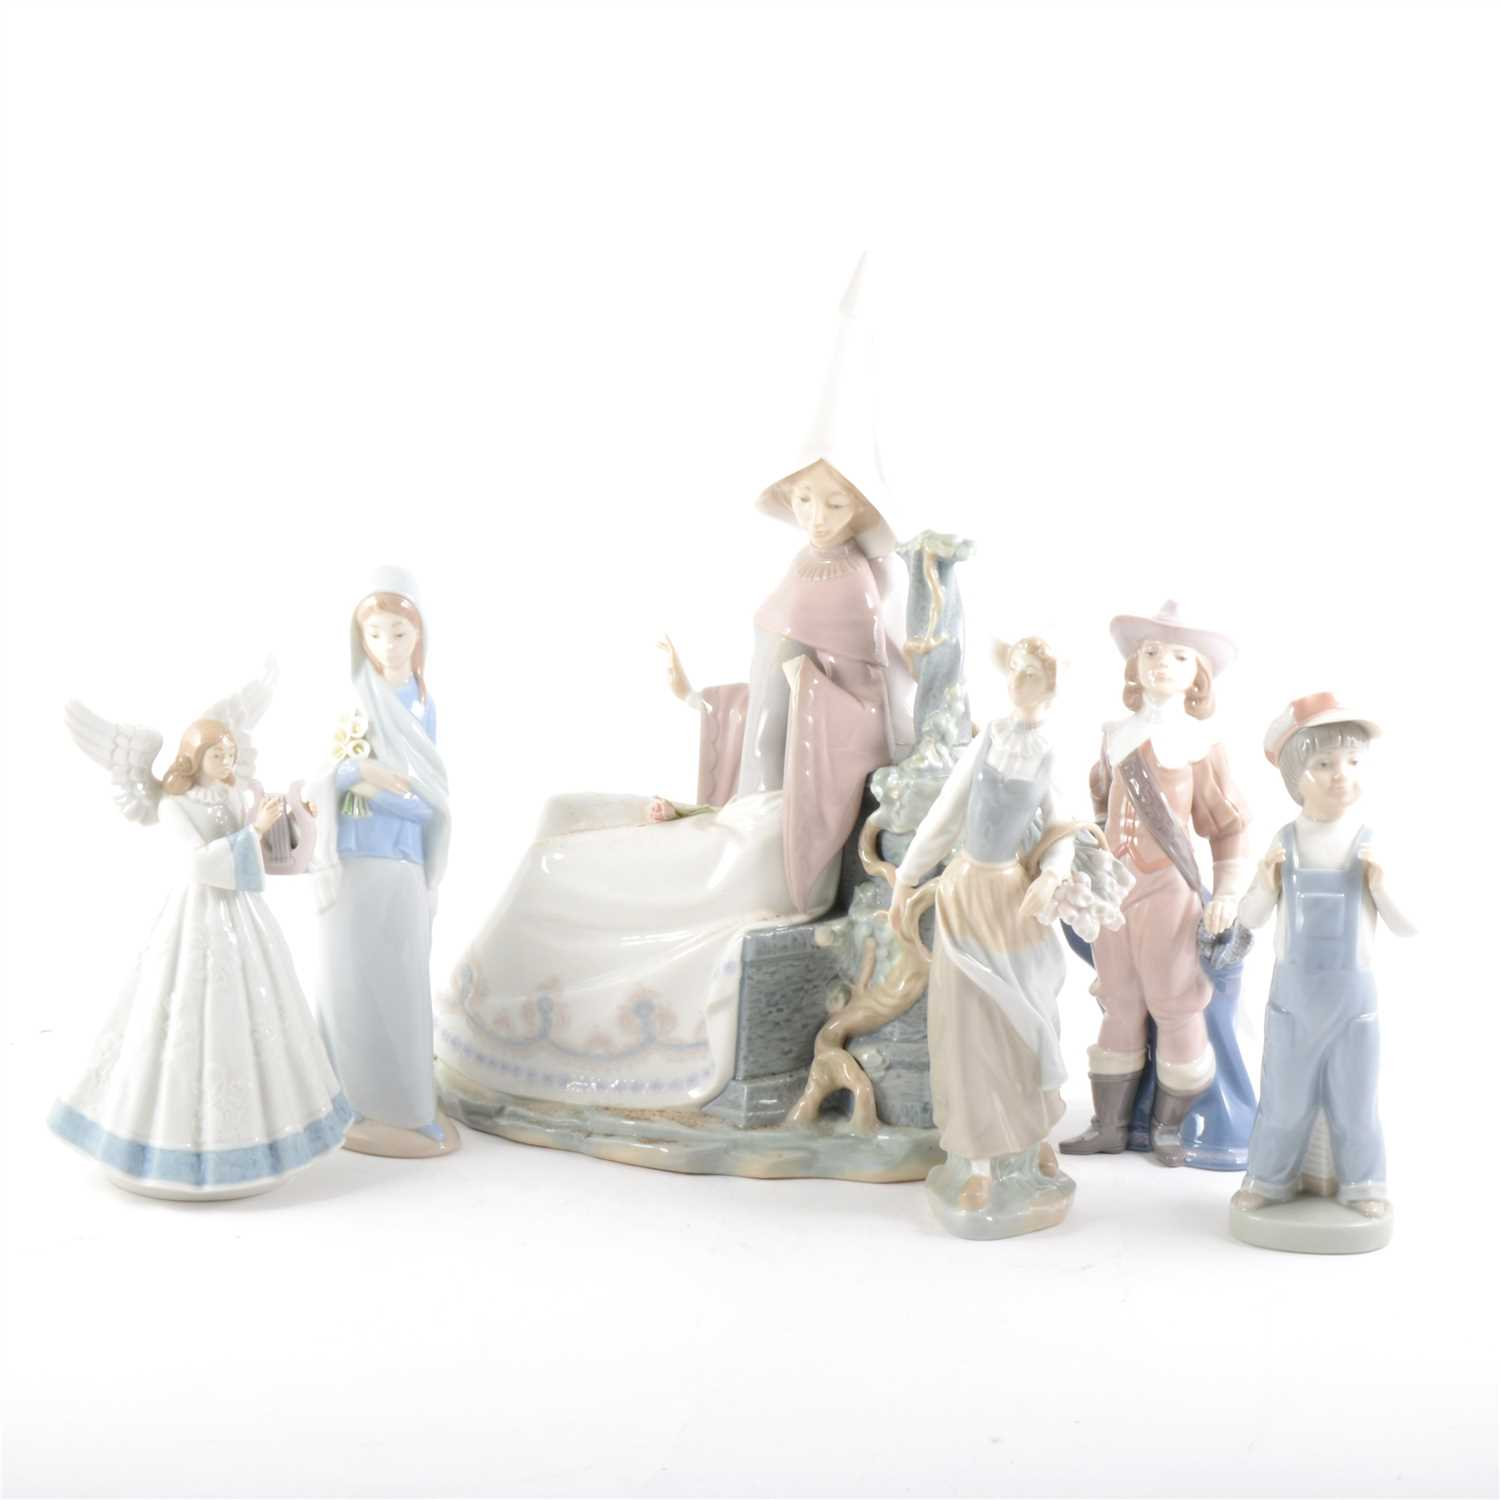 Lot 20-A large Lladro figure, of a lady in a tall hat, and five other Lladro figures.